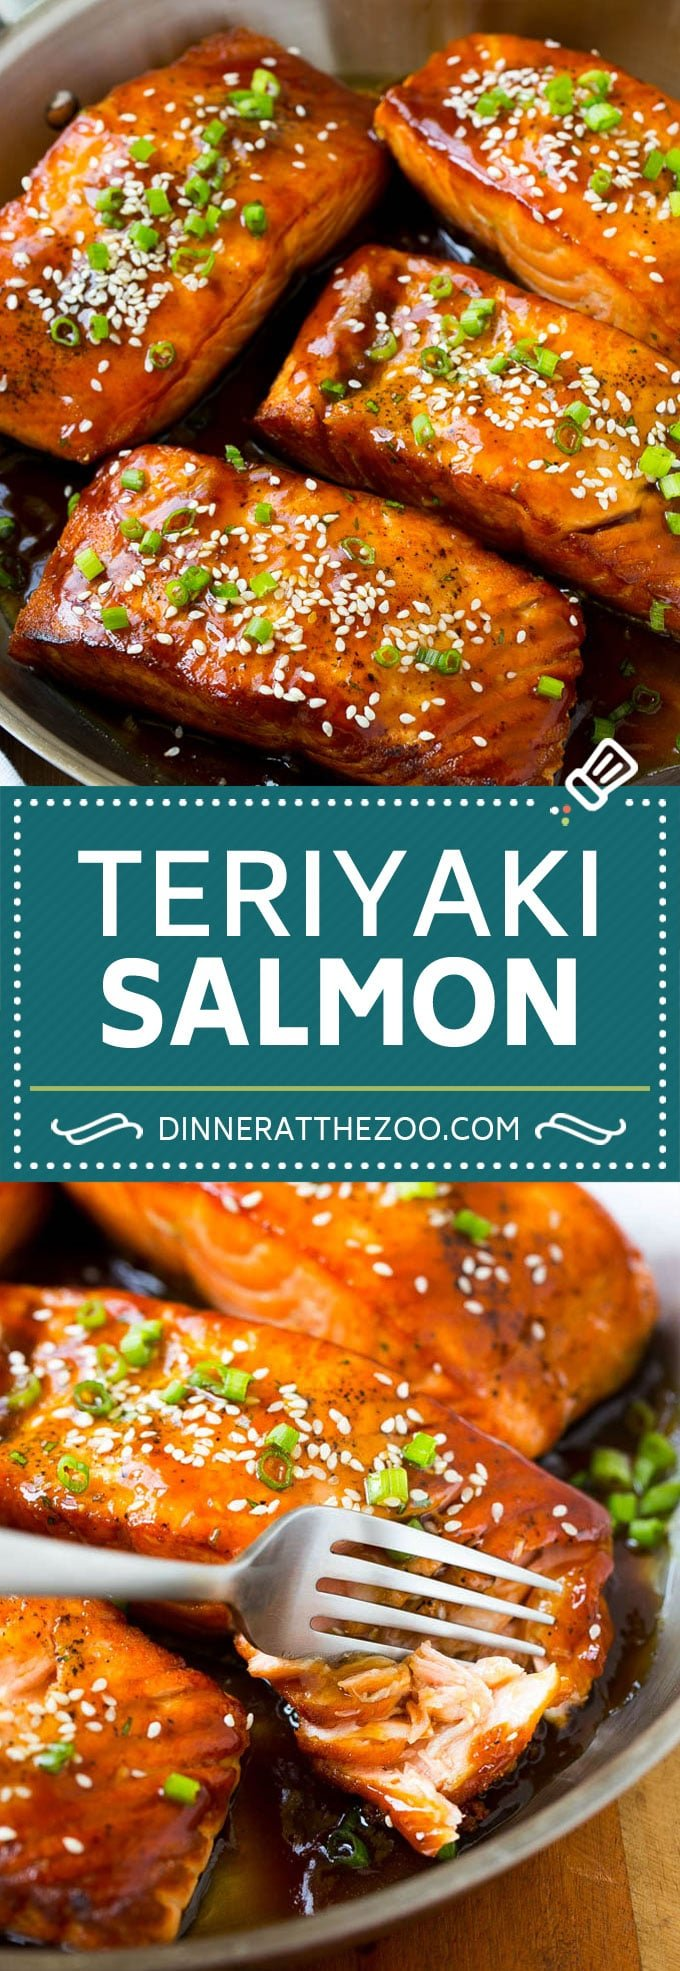 Salmon Teriyaki Recipe | Easy Salmon Recipe | Asian Salmon #salmon #fish #dinner #healthy #dinneratthezoo